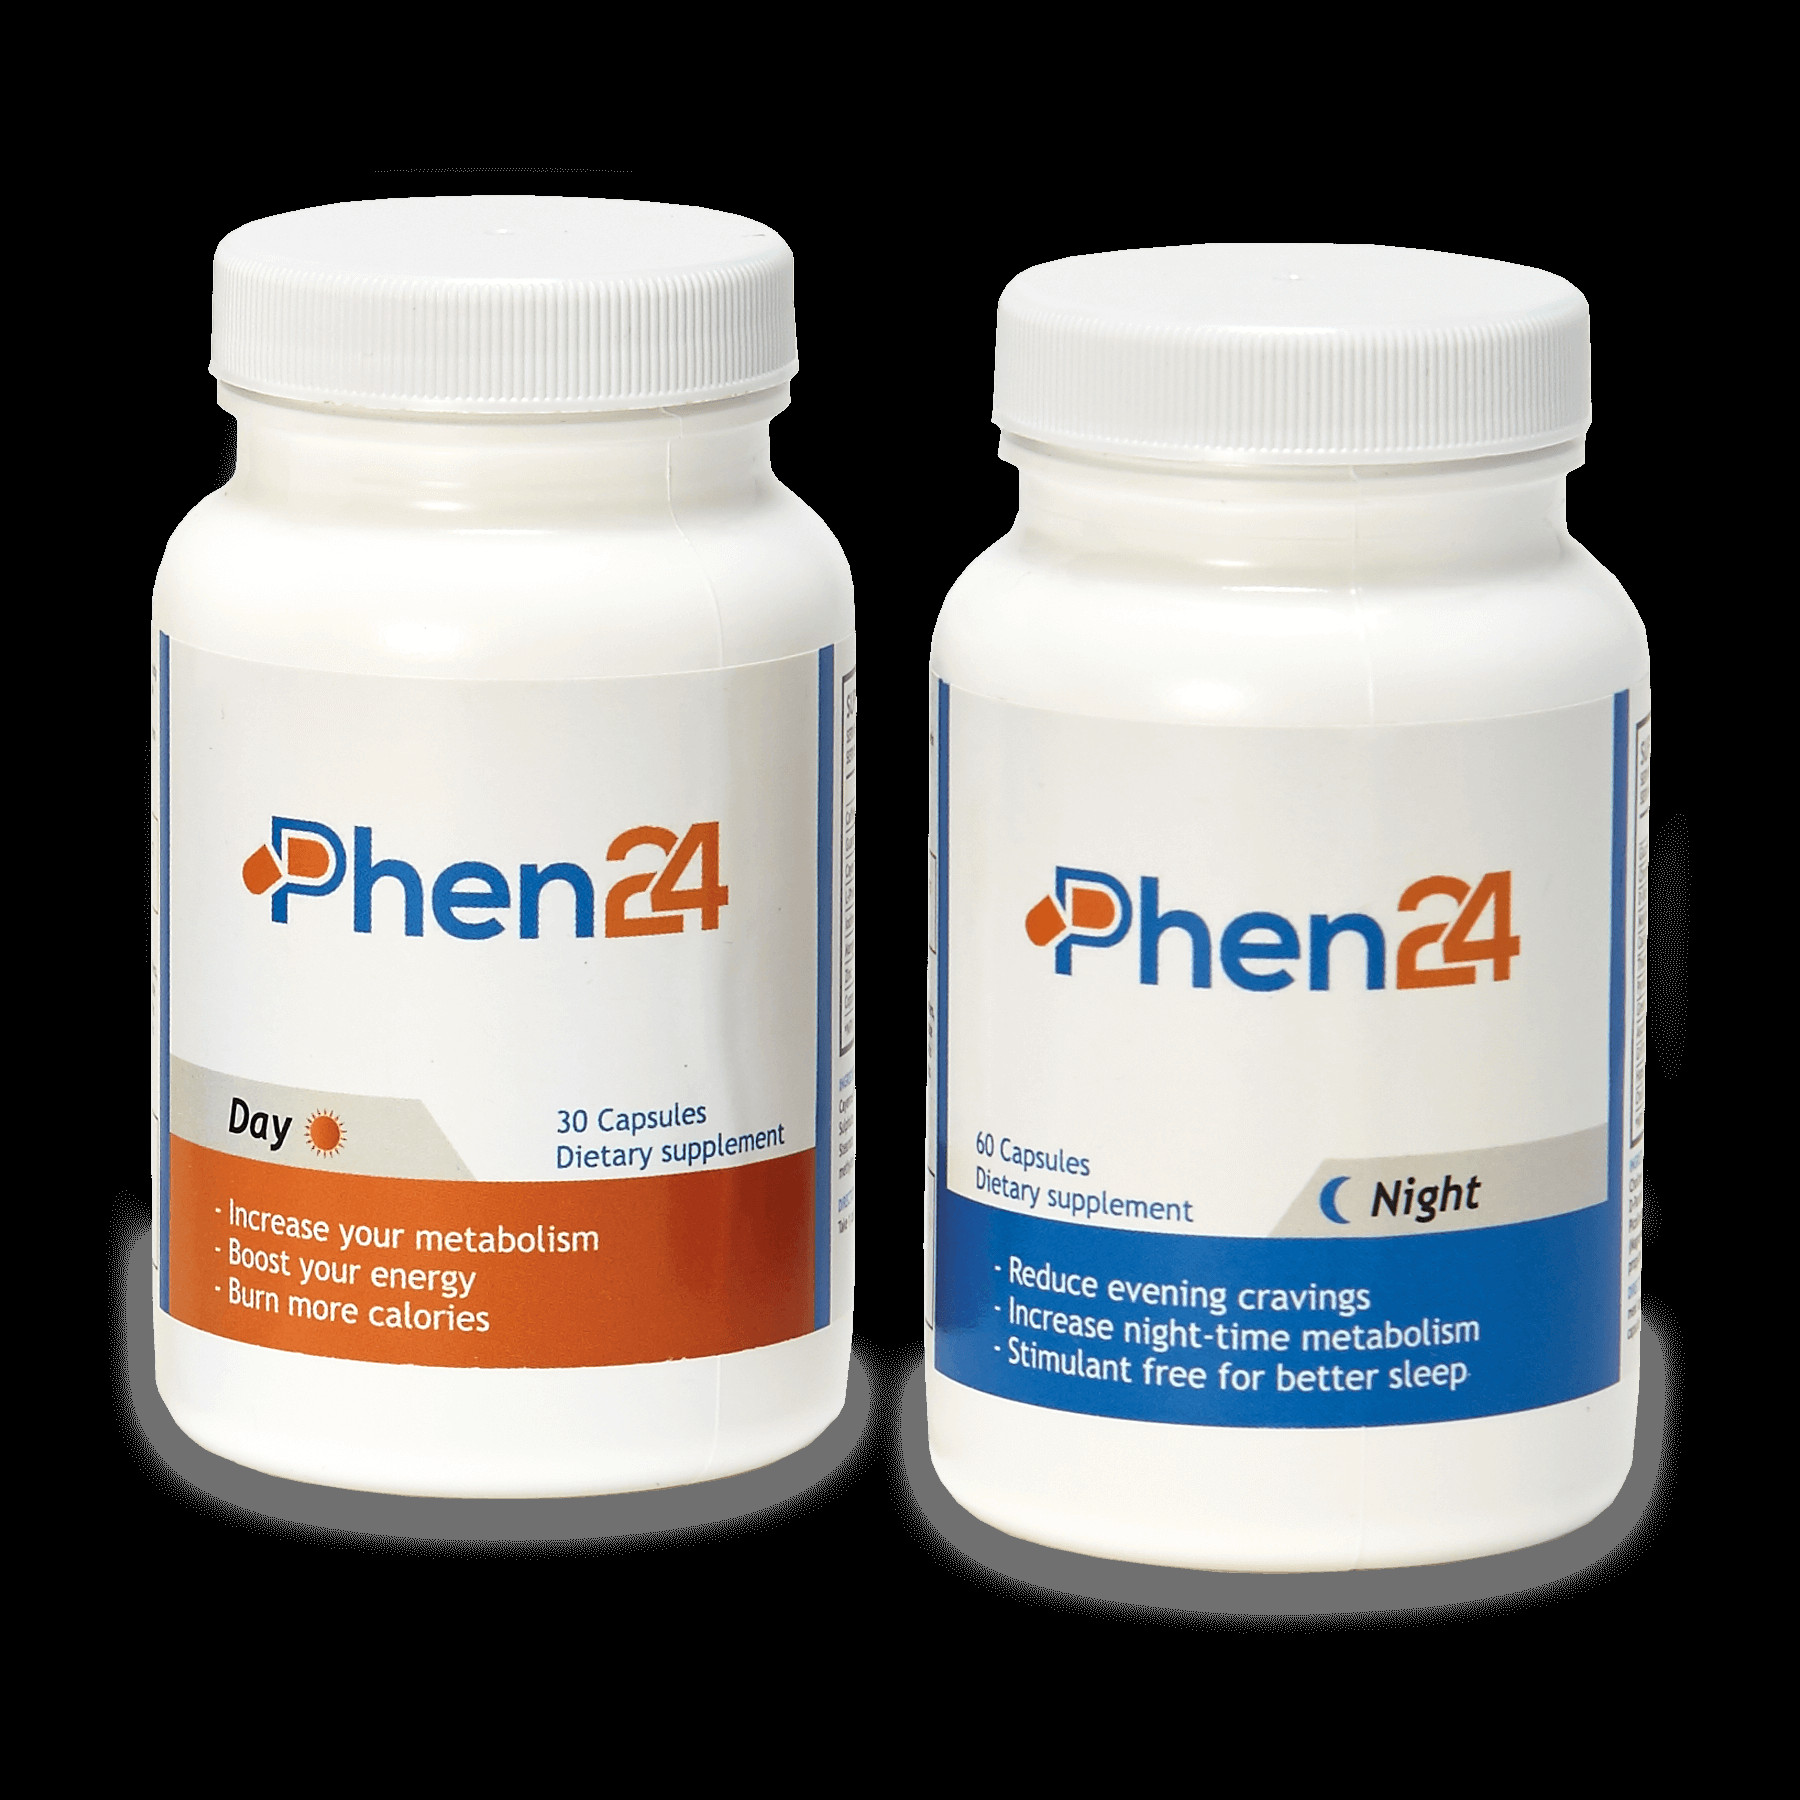 Best Weight Loss Supplements  Phen24 Reviews – The Key to Lose Your Weight Safely and